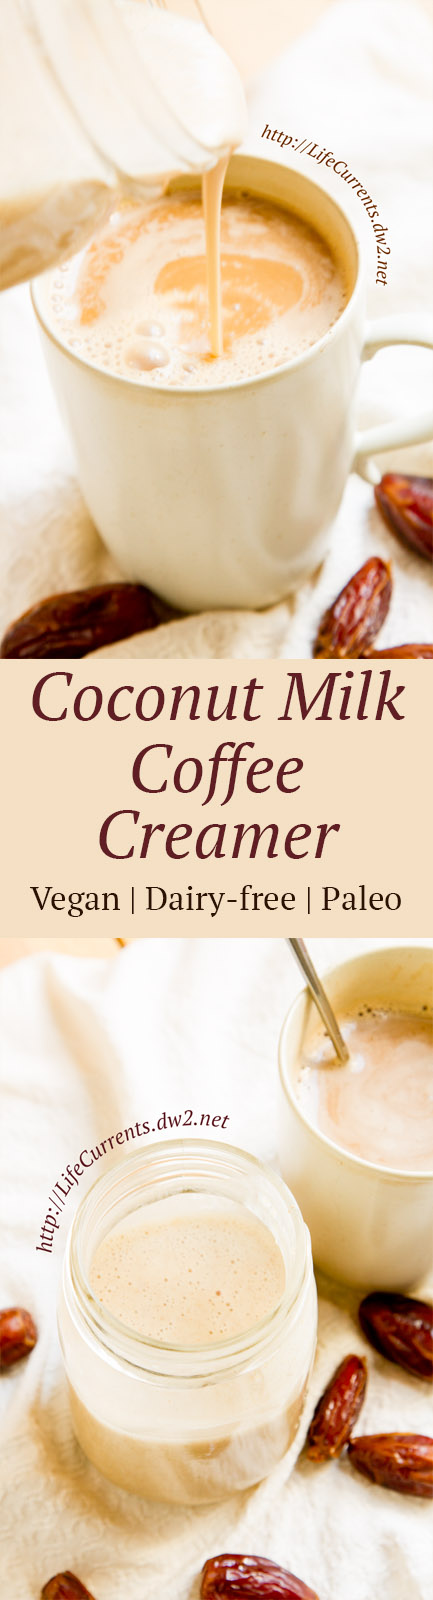 Vegan Coffee Creamer Whole Foods